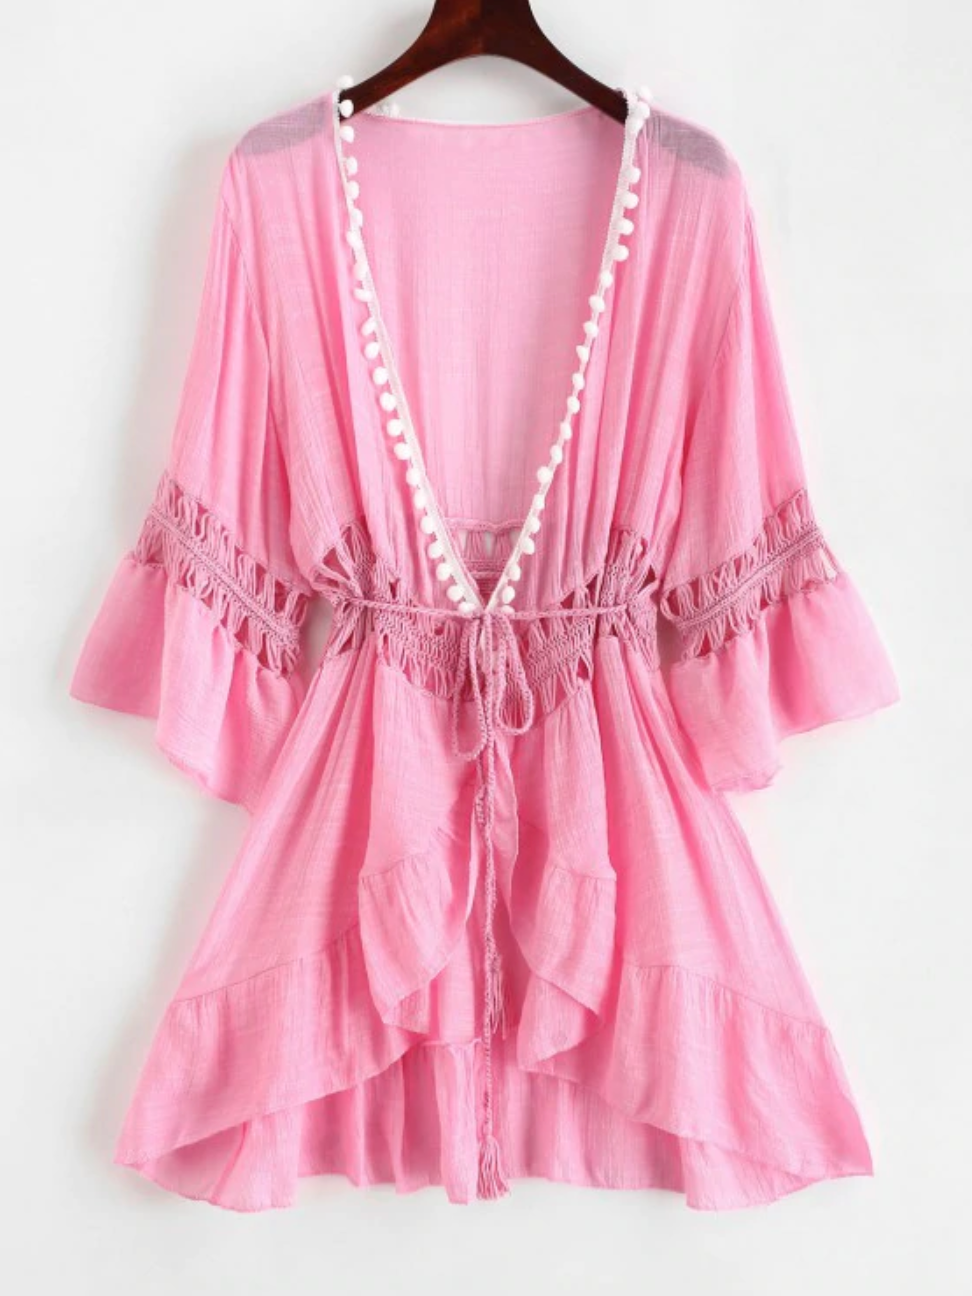 Pom-pom Crochet Panel Beach Dress Pink